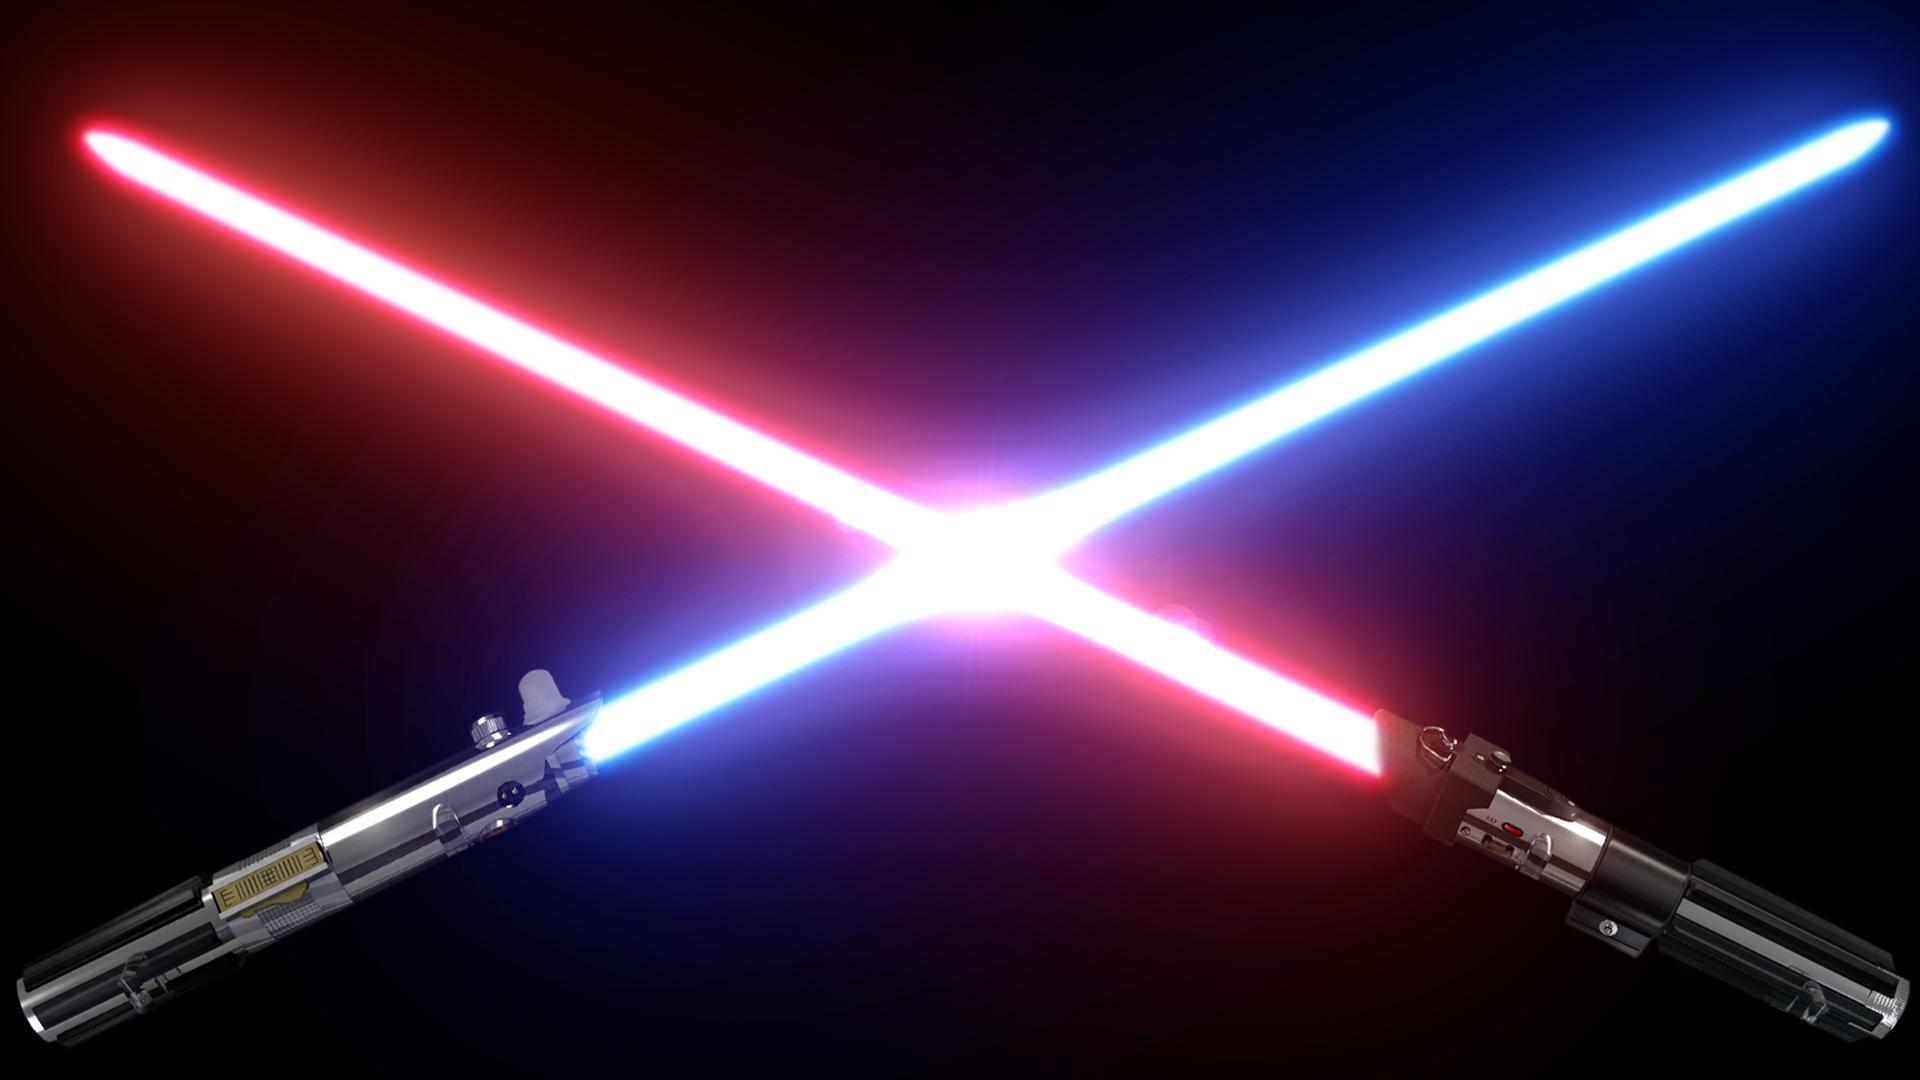 Which color lightsaber best suits you?